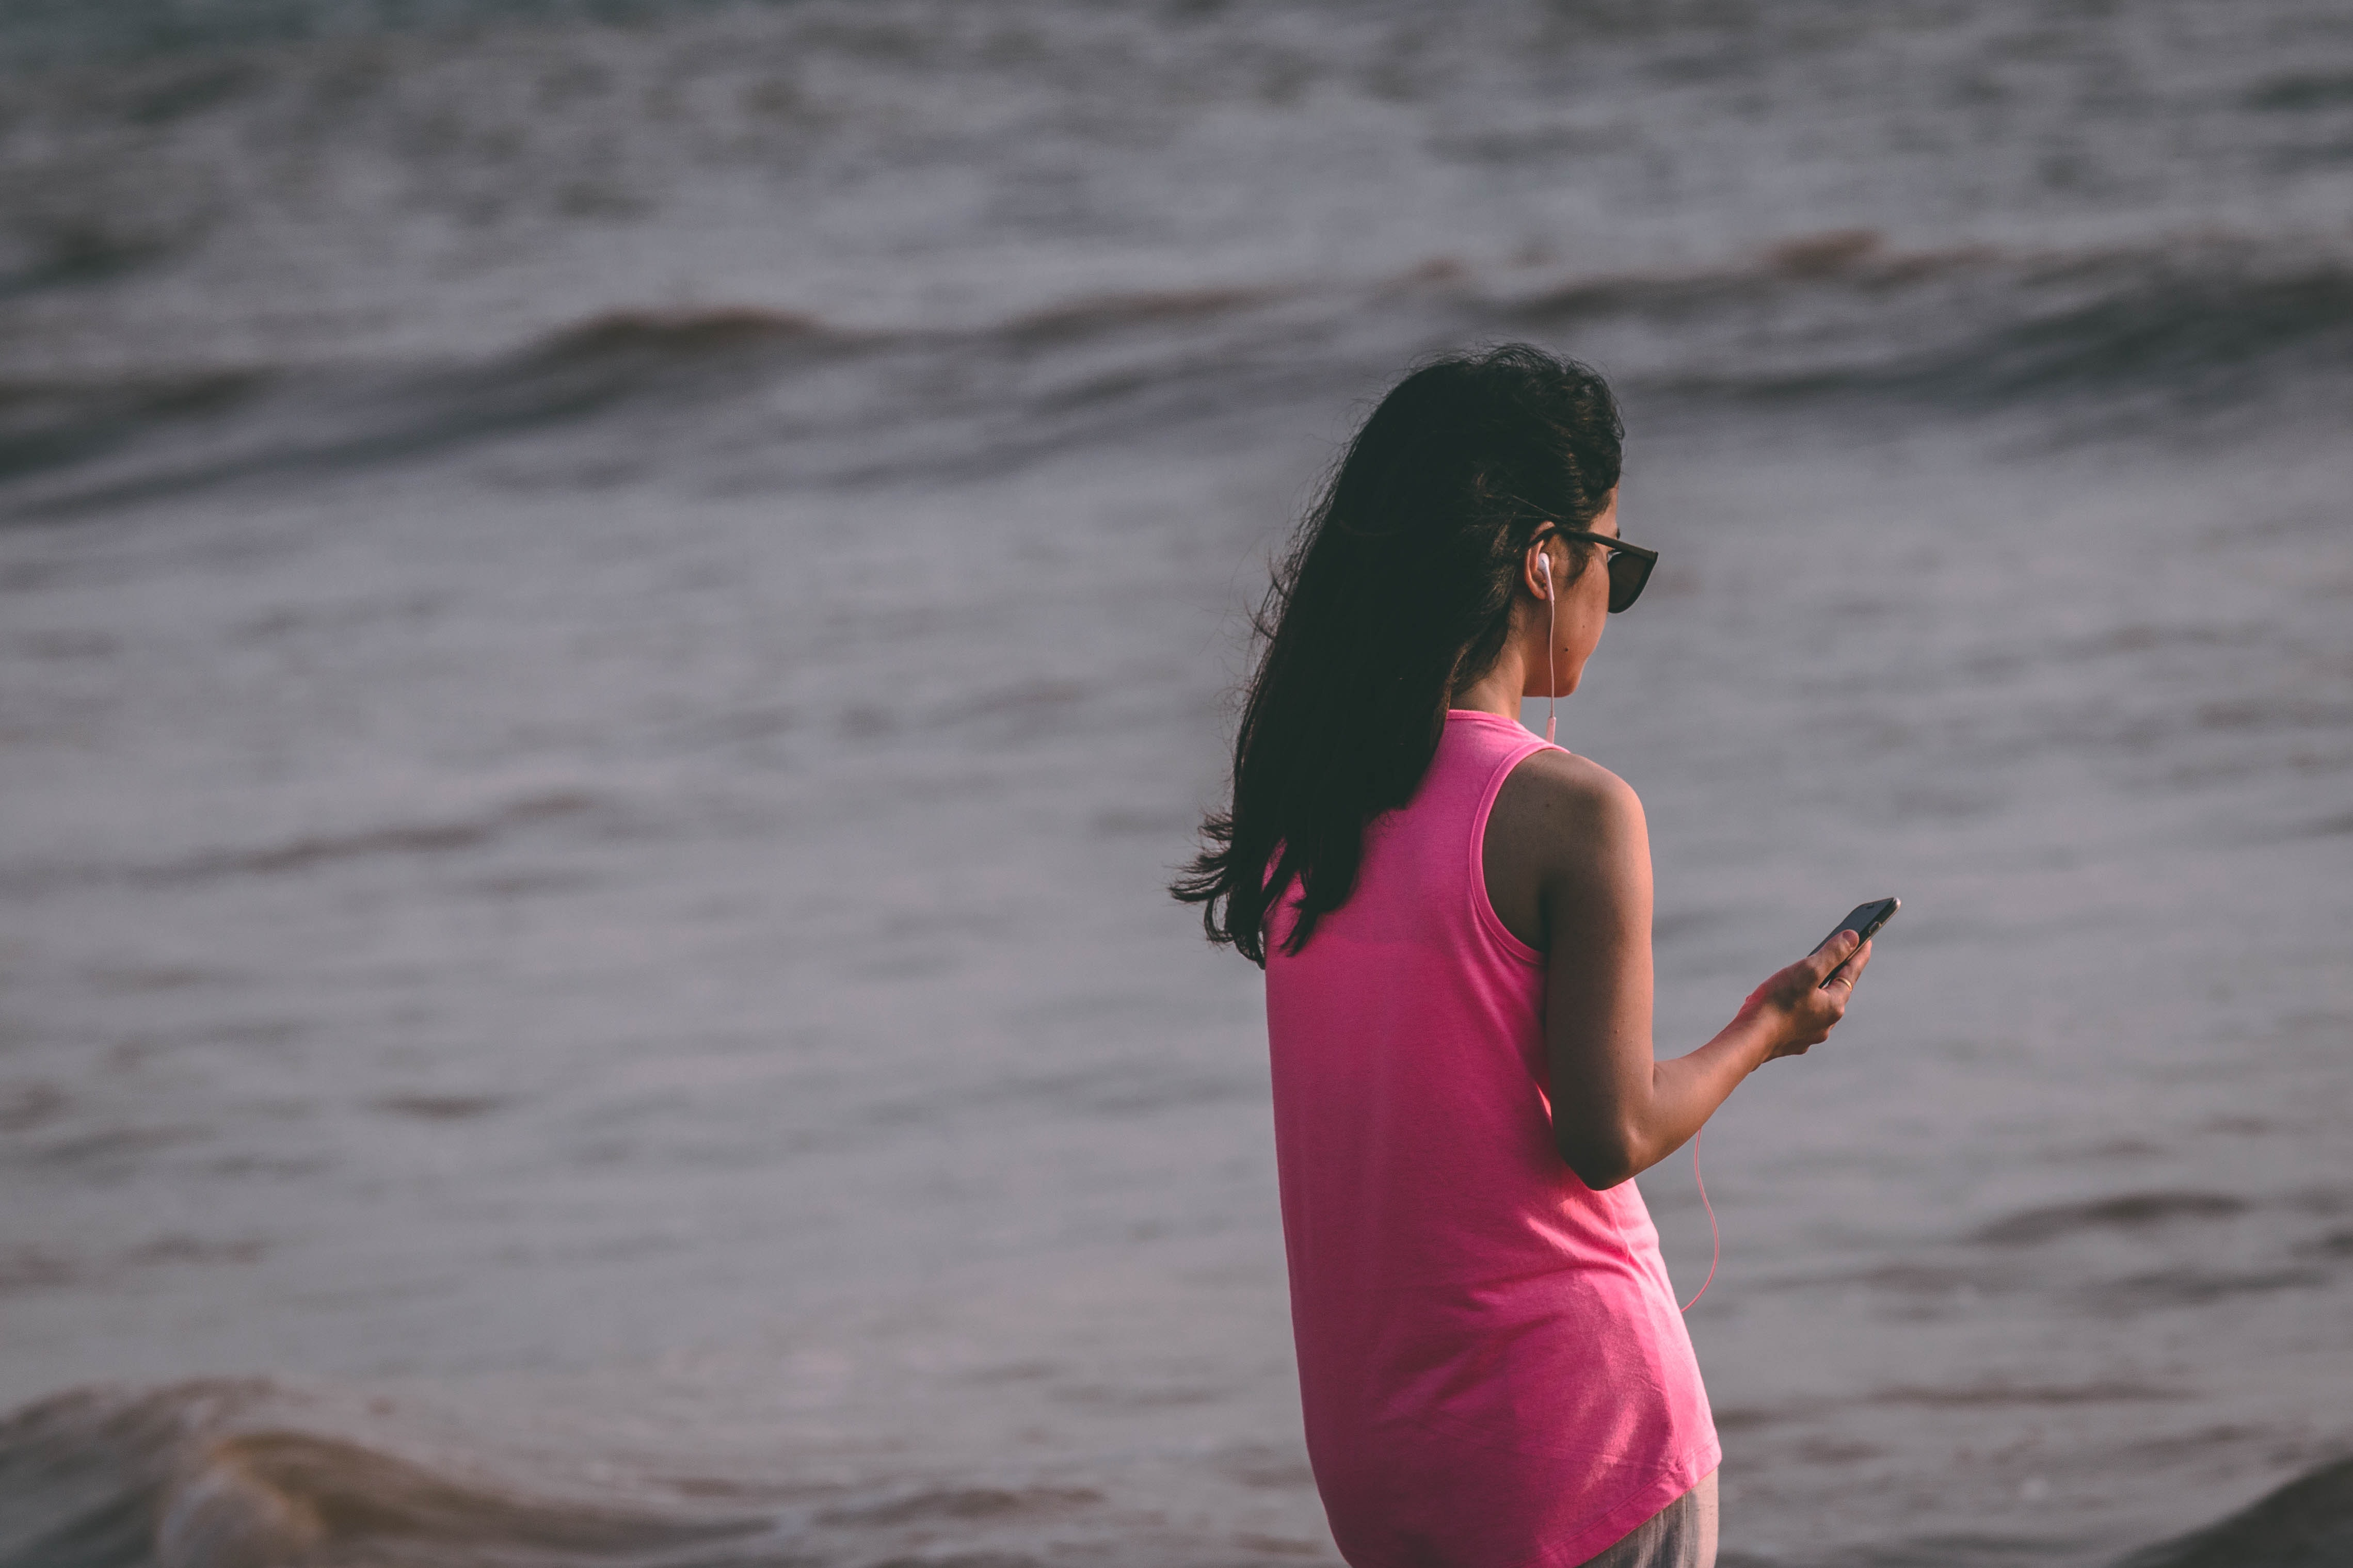 Woman Wearing Pink Tank Top Standing Near Sea Shore, Beach, Cellphone, Daytime, Earphone, HQ Photo